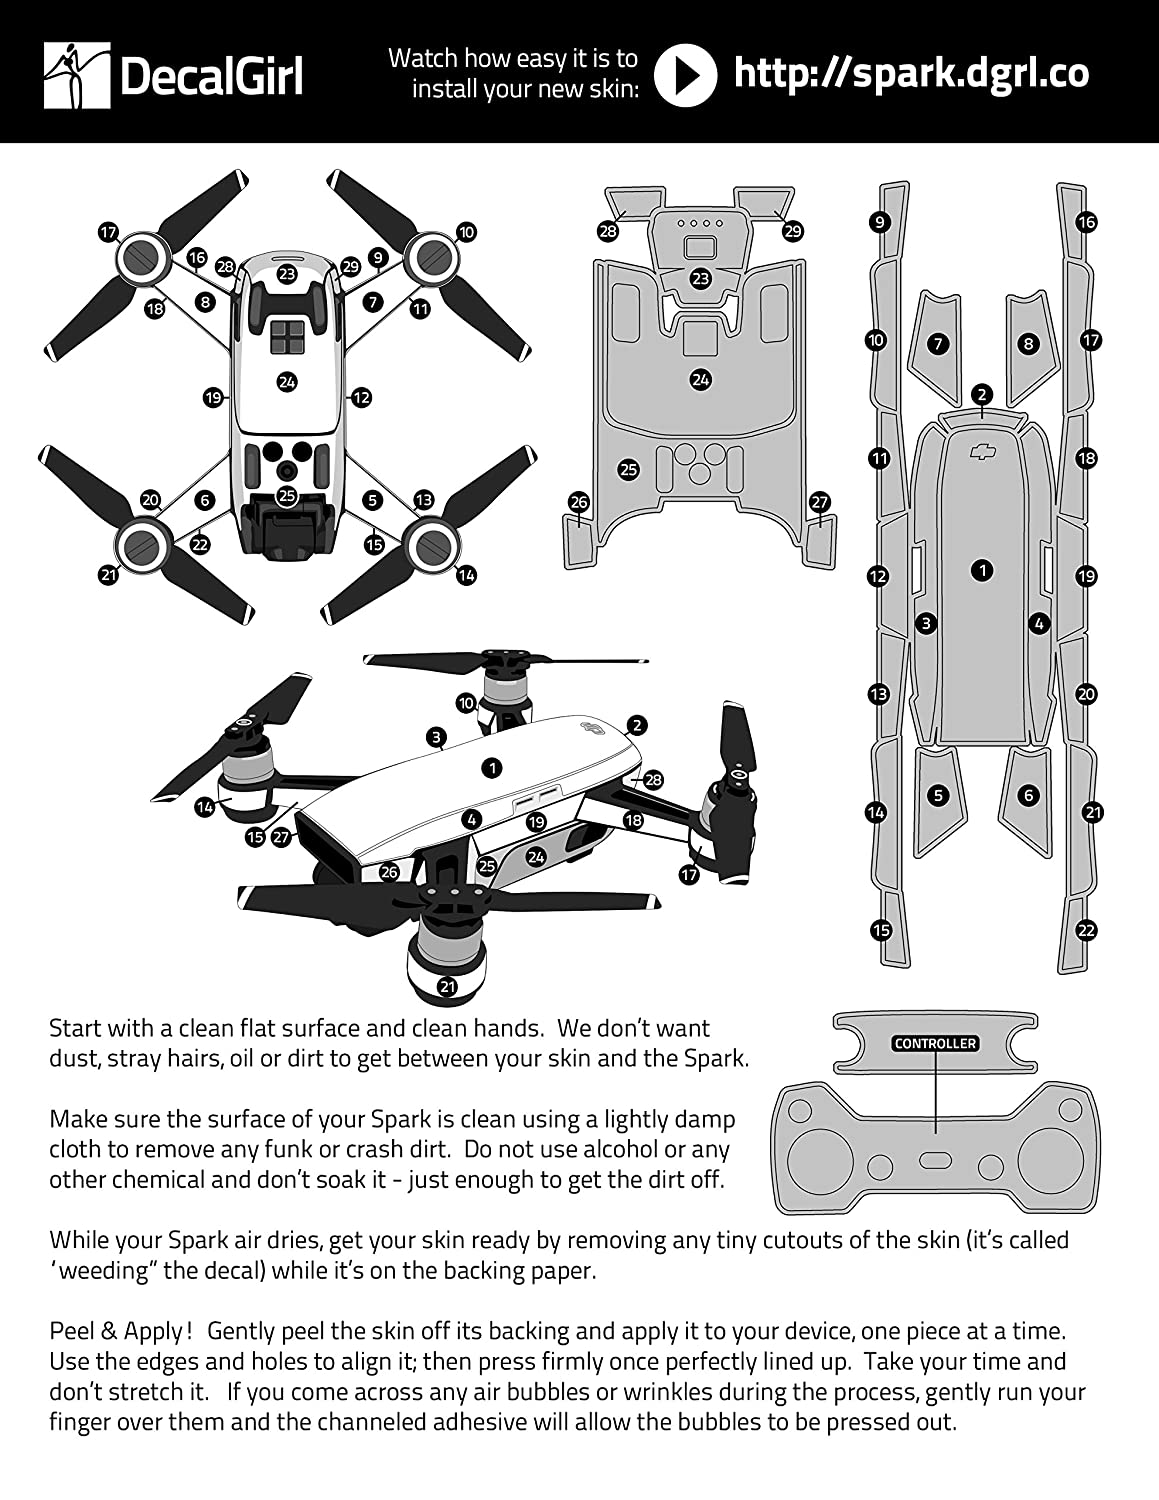 Includes Drone Skin FC Camo Decal for Drone DJI Spark Kit Controller Skin and 1 Battery Skin DecalGirl